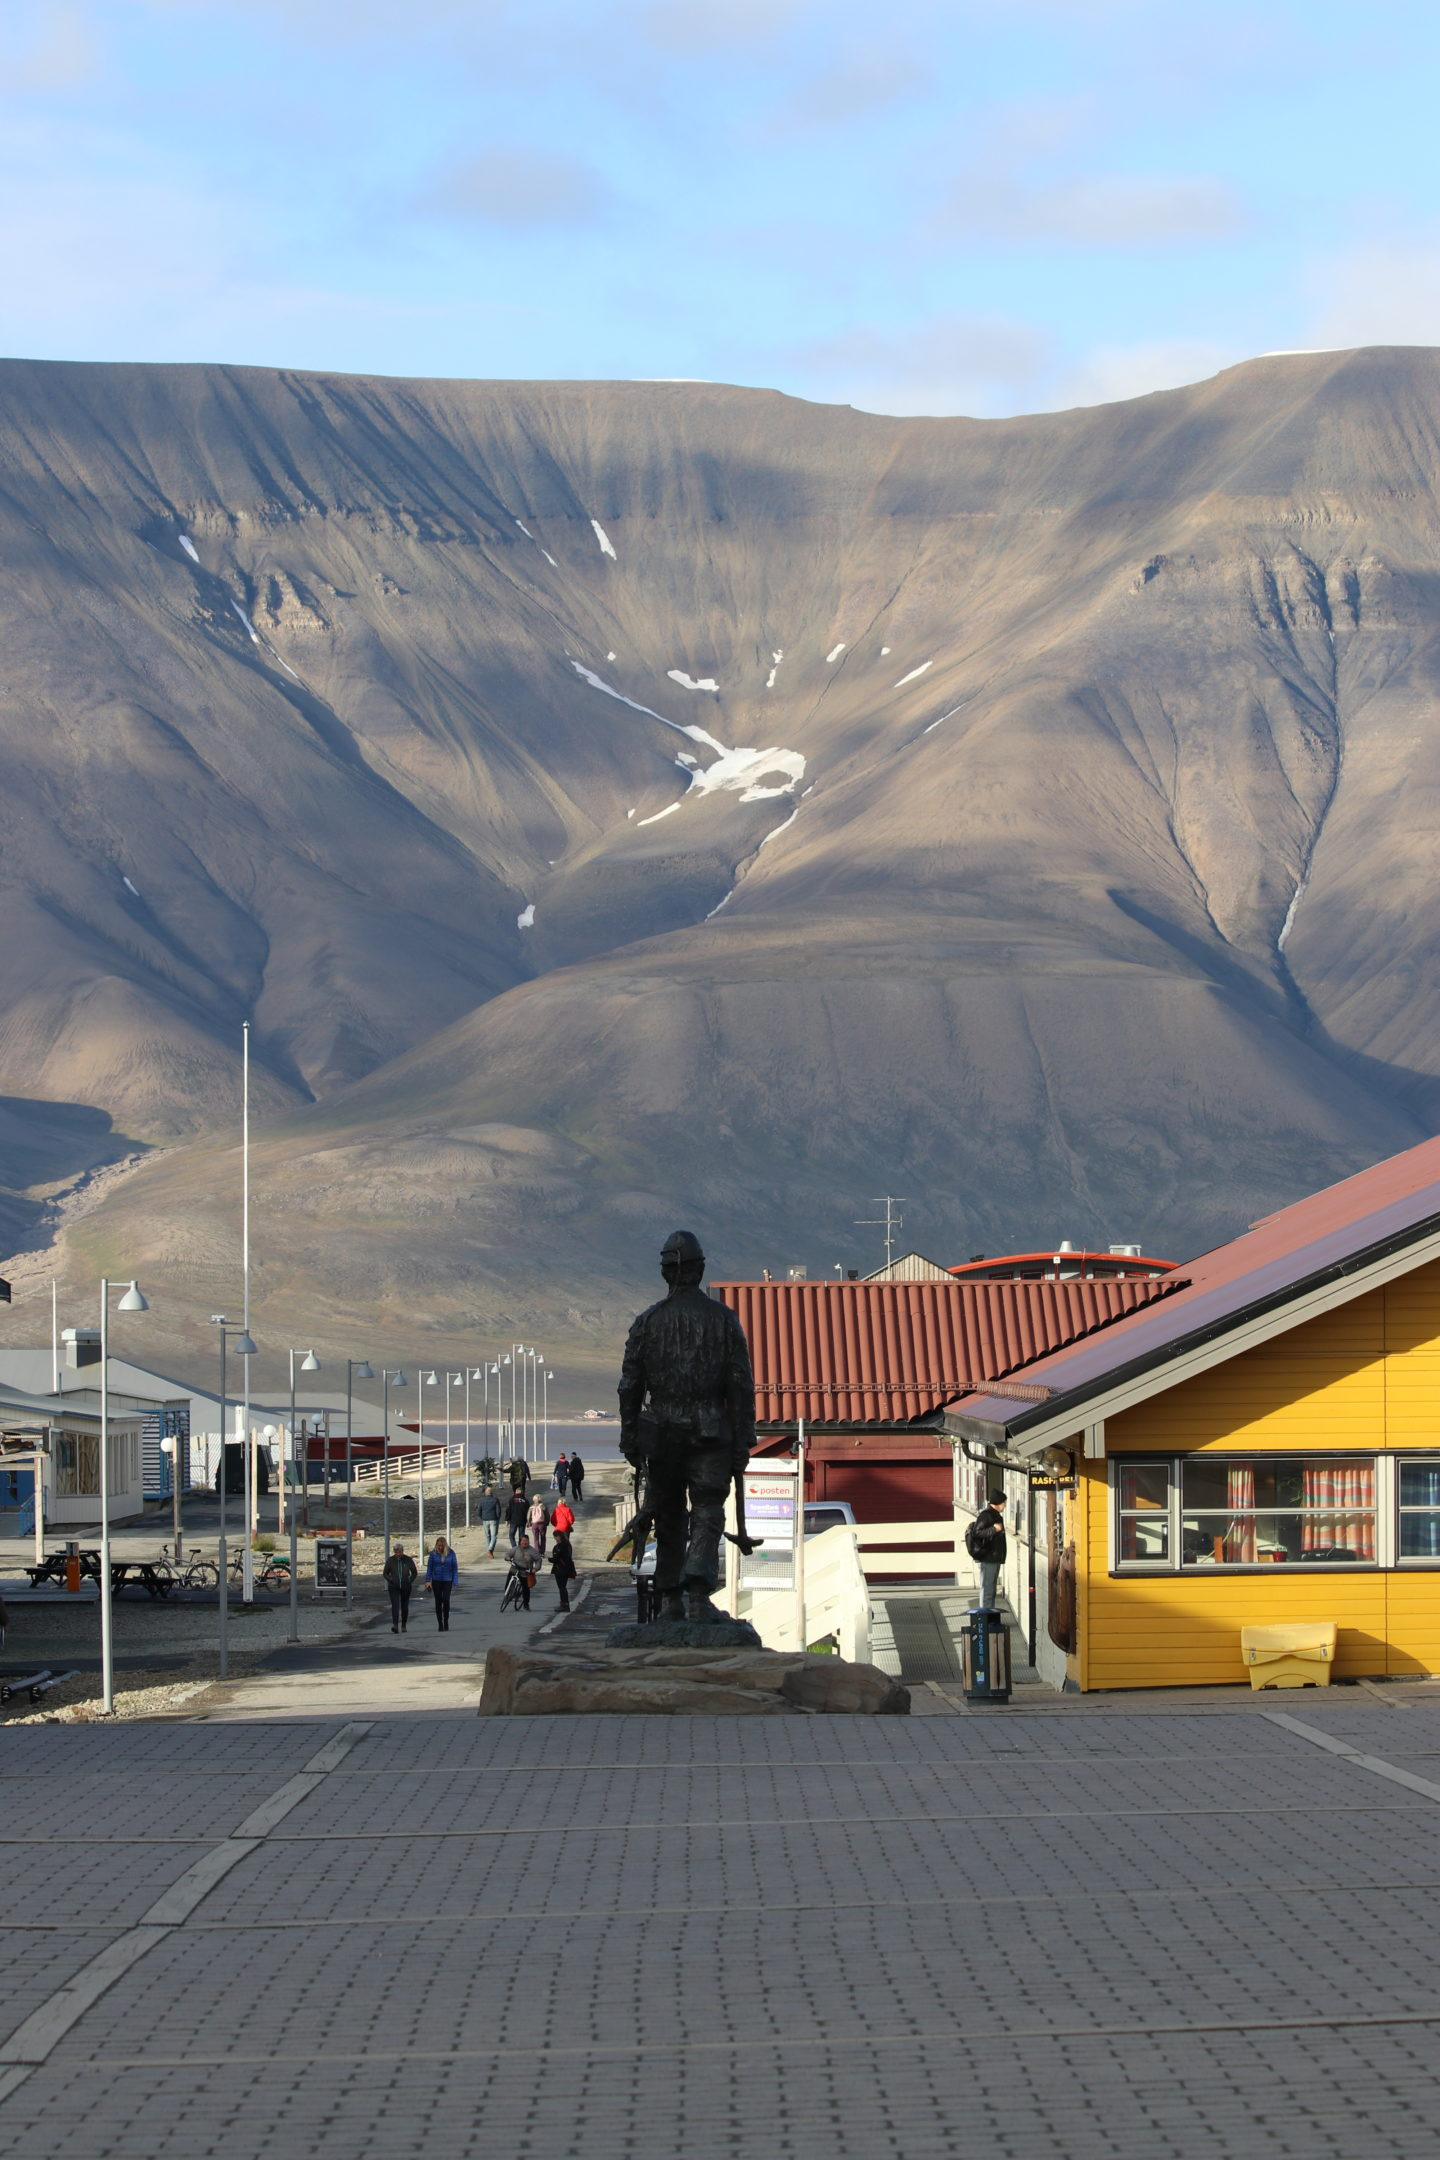 Longyearbyen, Svalbard: Summer in the High Arctic